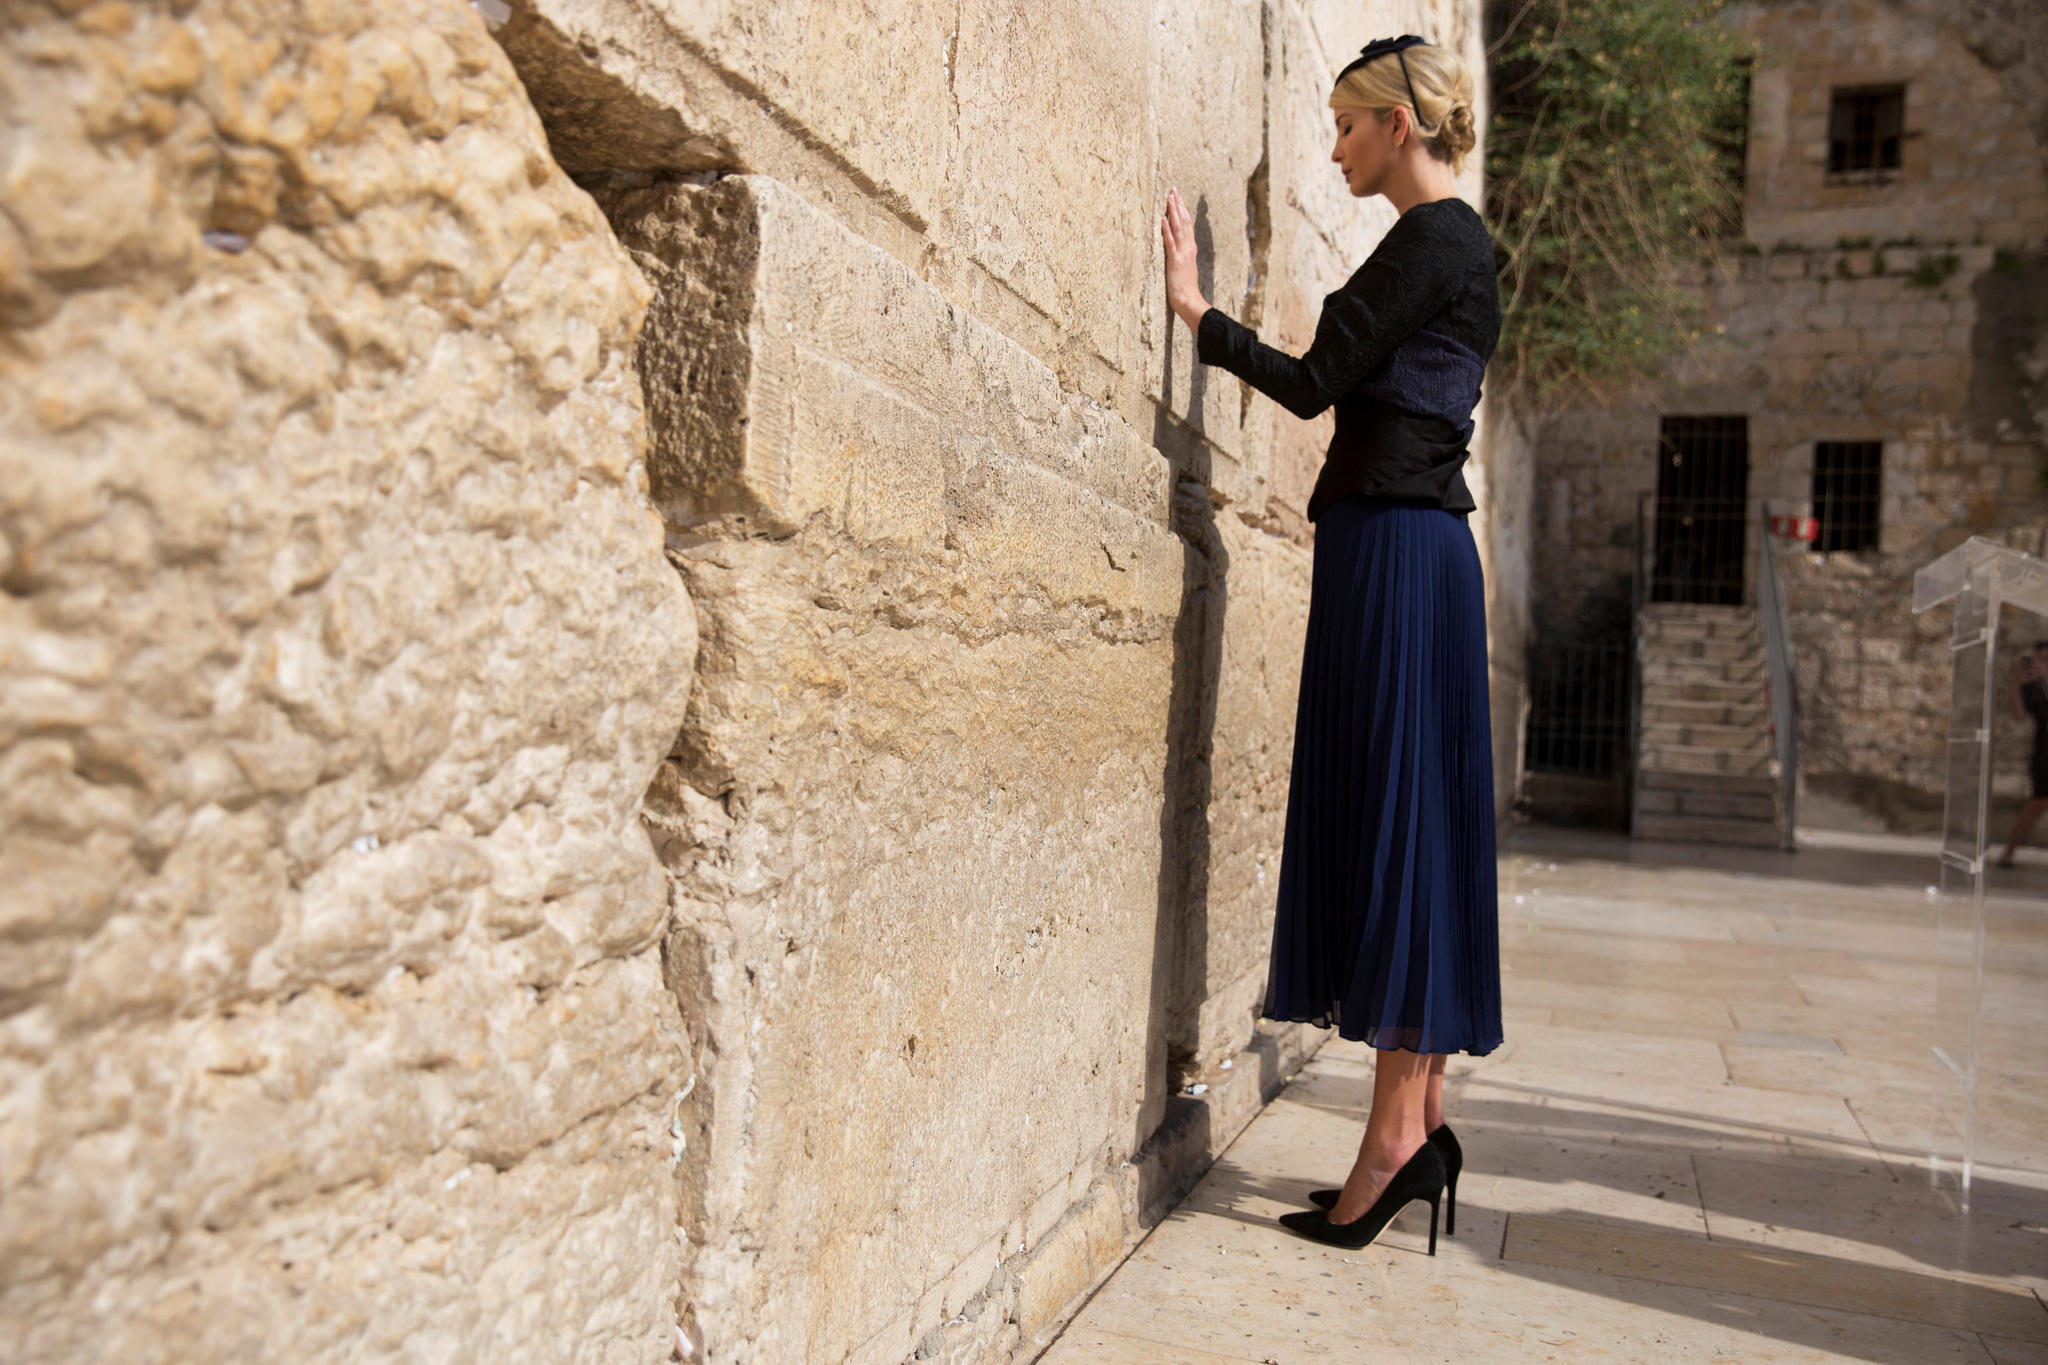 Melania S Clothes In Israel